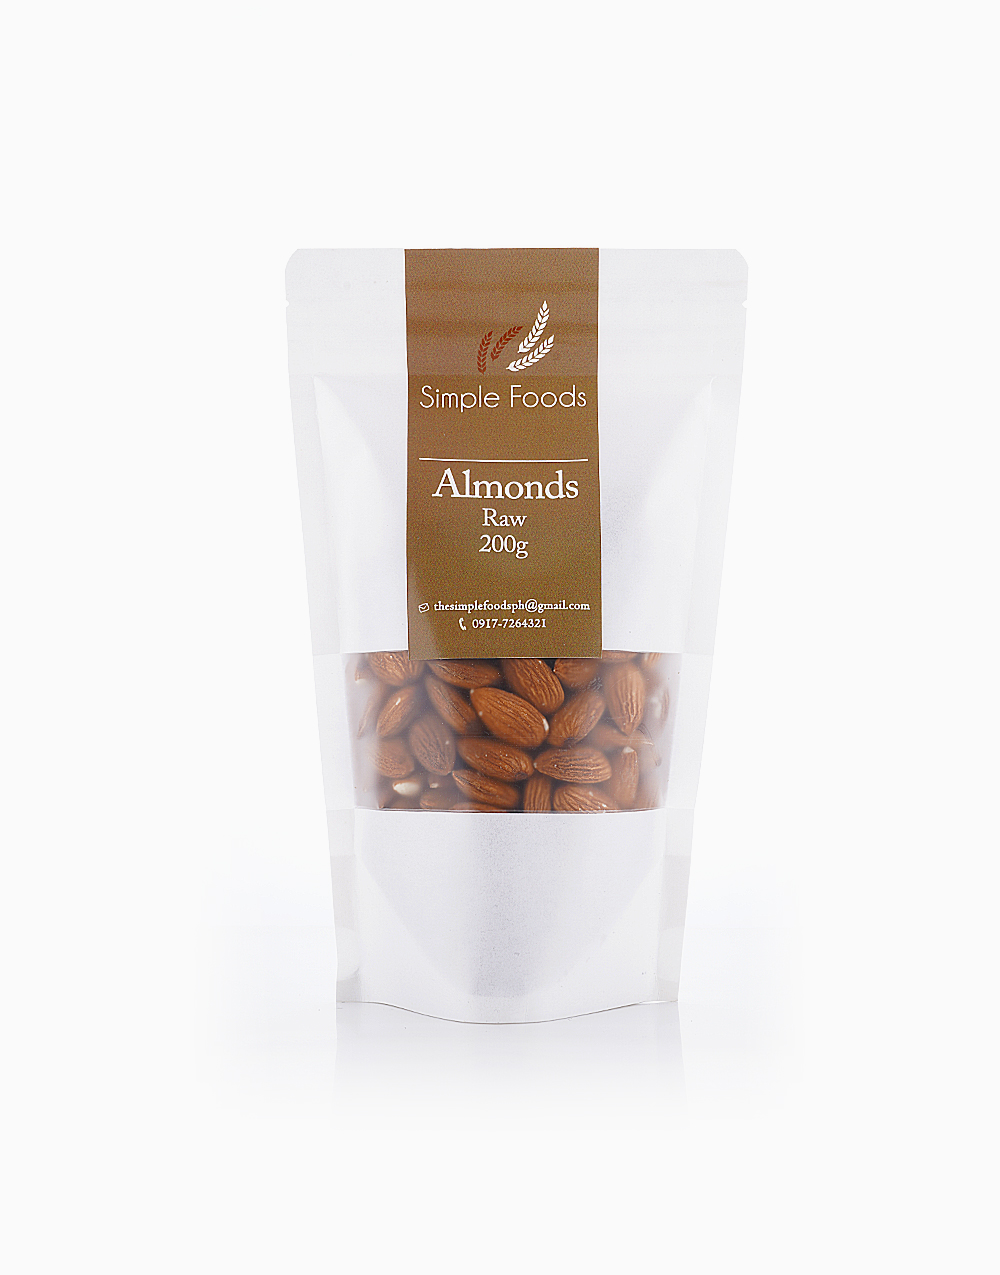 Raw Almonds (200g) by Simple Foods